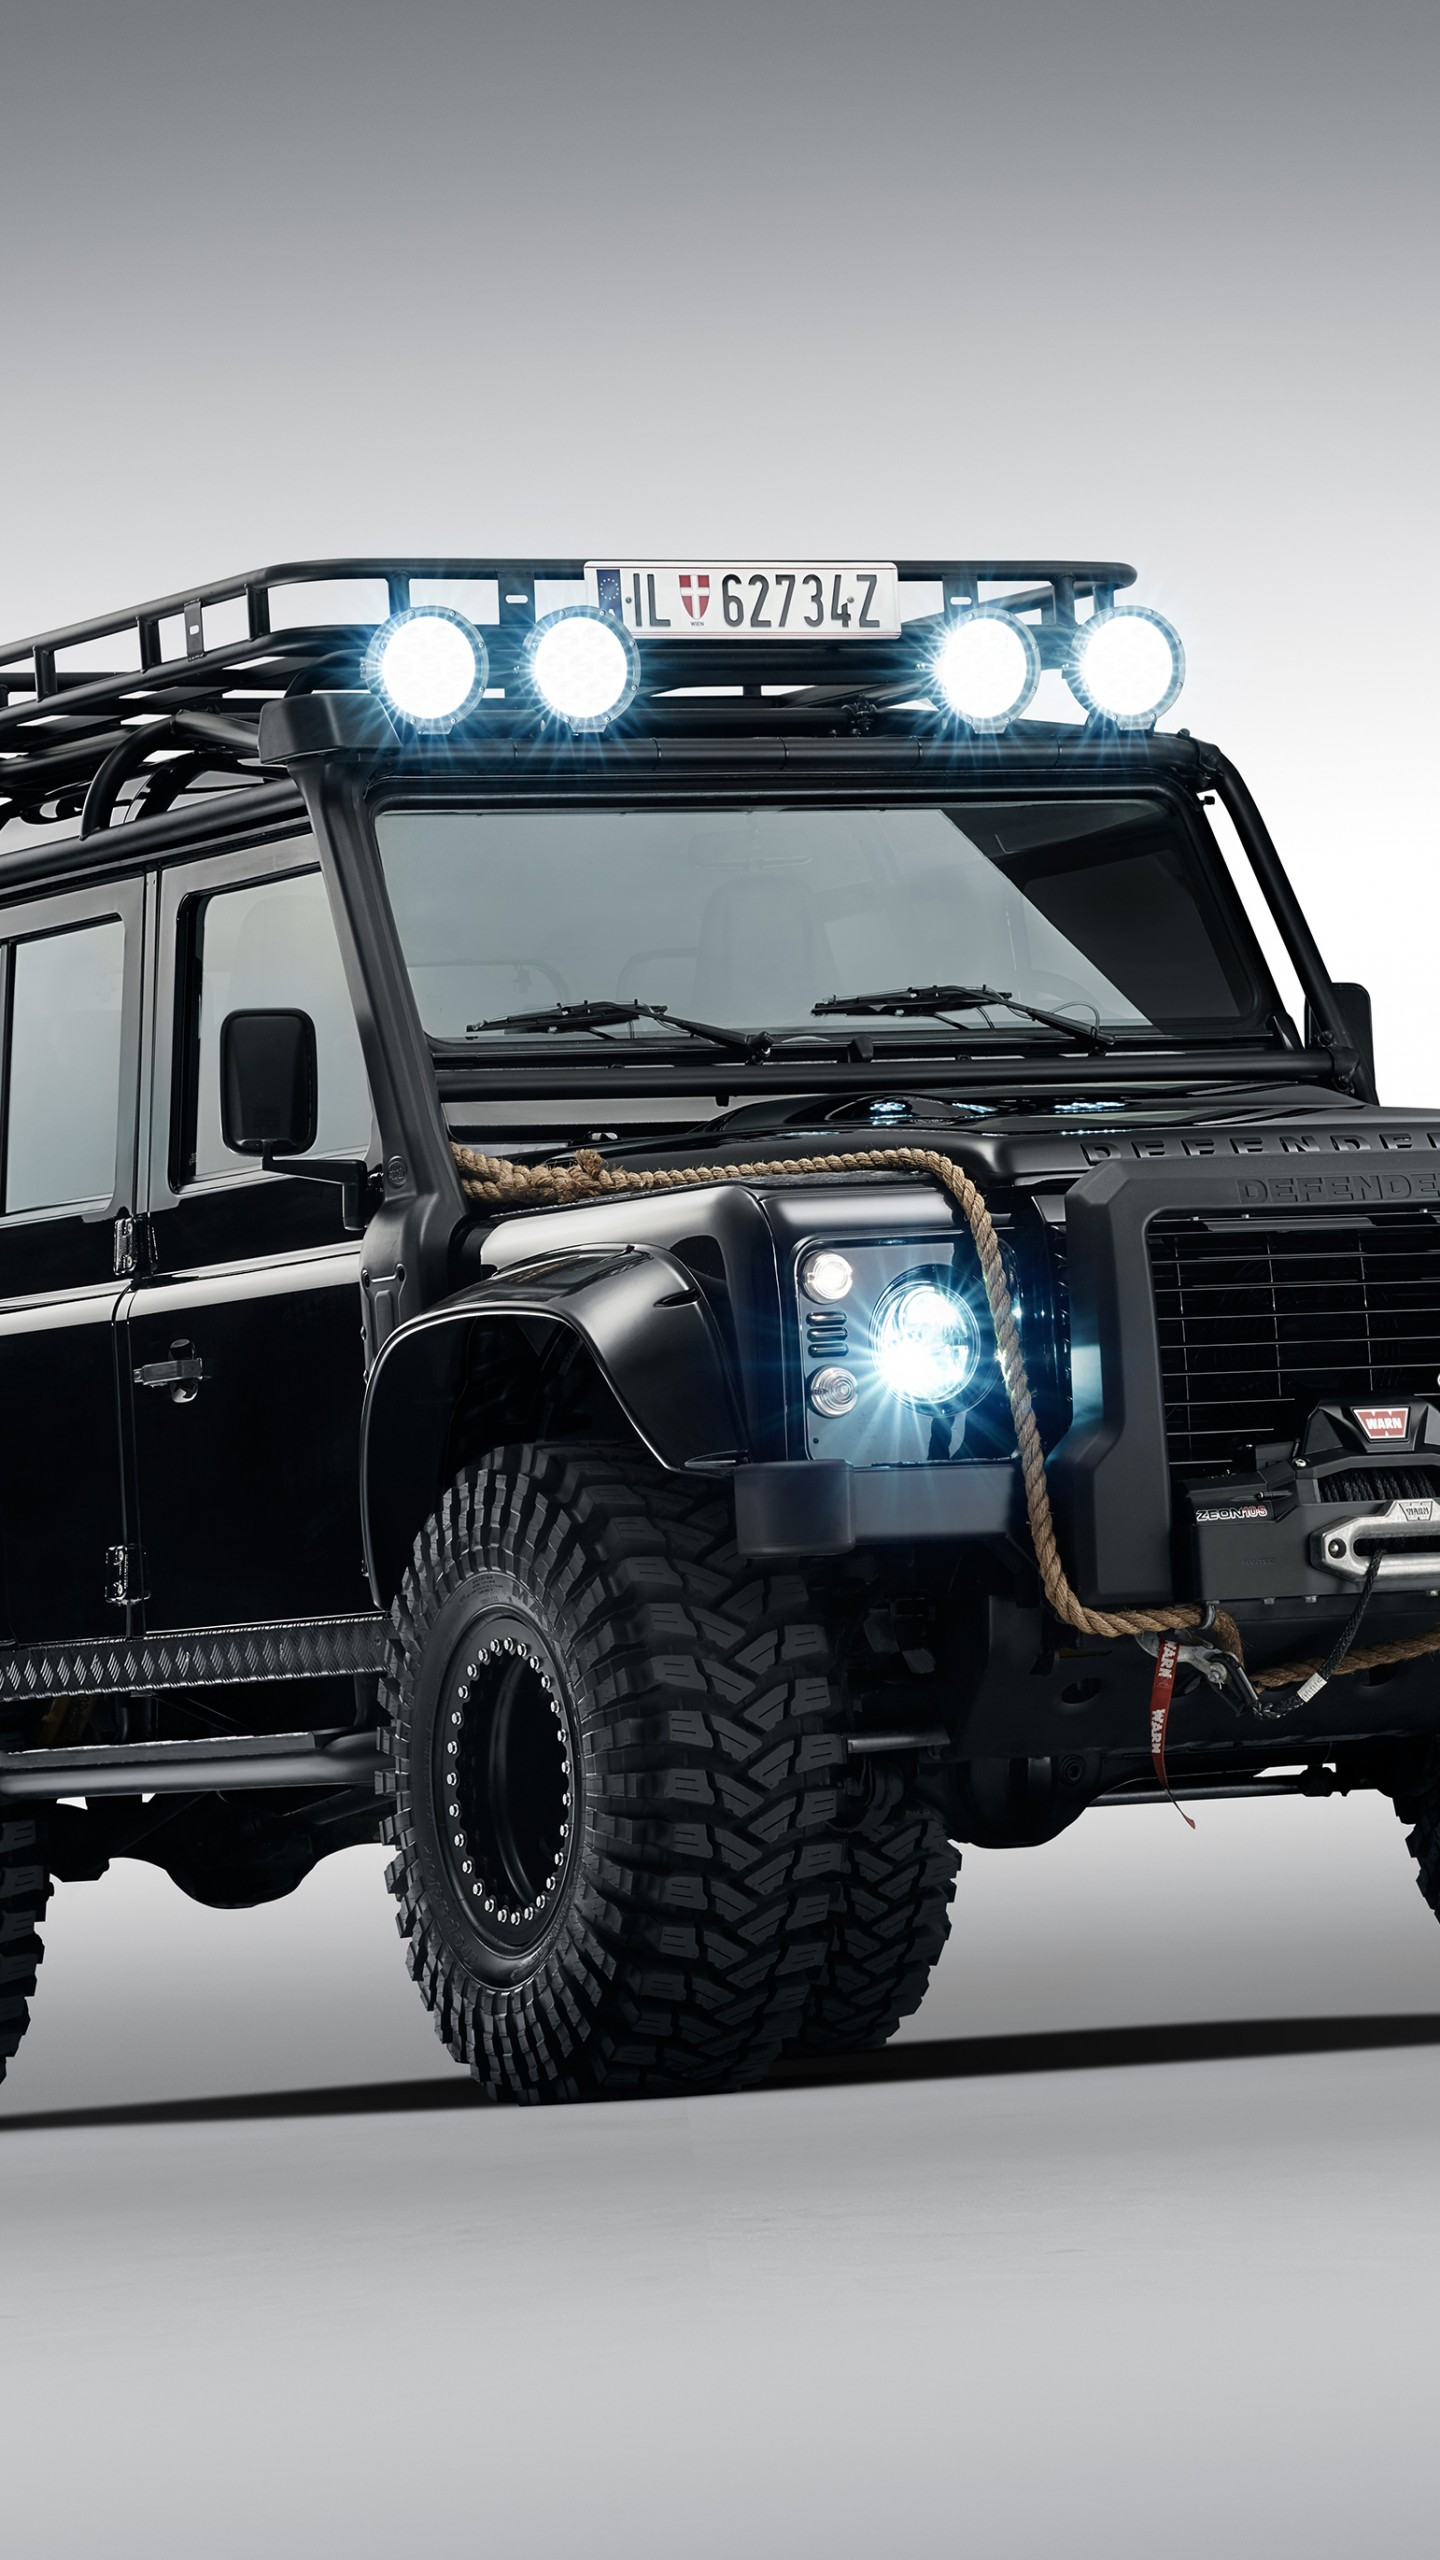 Quotes Iphone Wallpaper Pinterest Wallpaper Land Rover Defender 110 007 Spectre Movie Cars